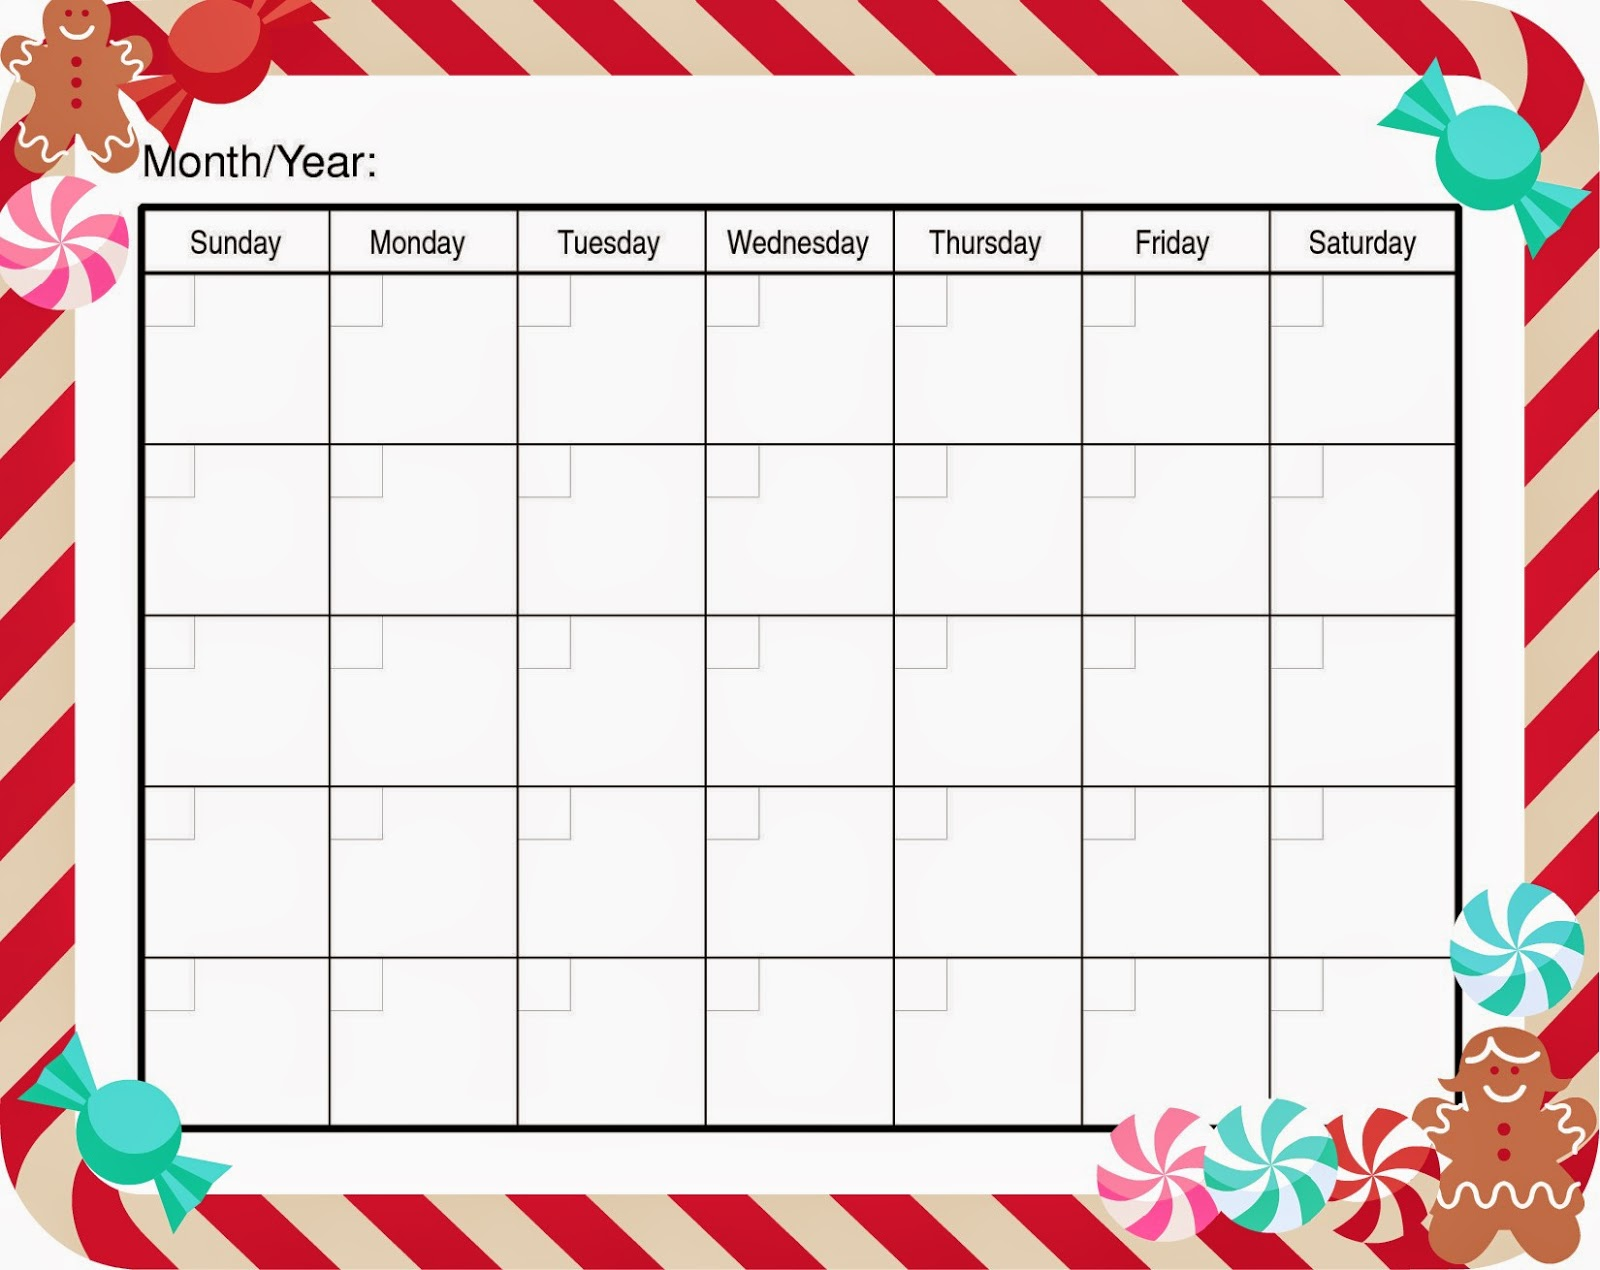 Blank Calendar For Kids To Fill In | Search Results | Calendar 2015